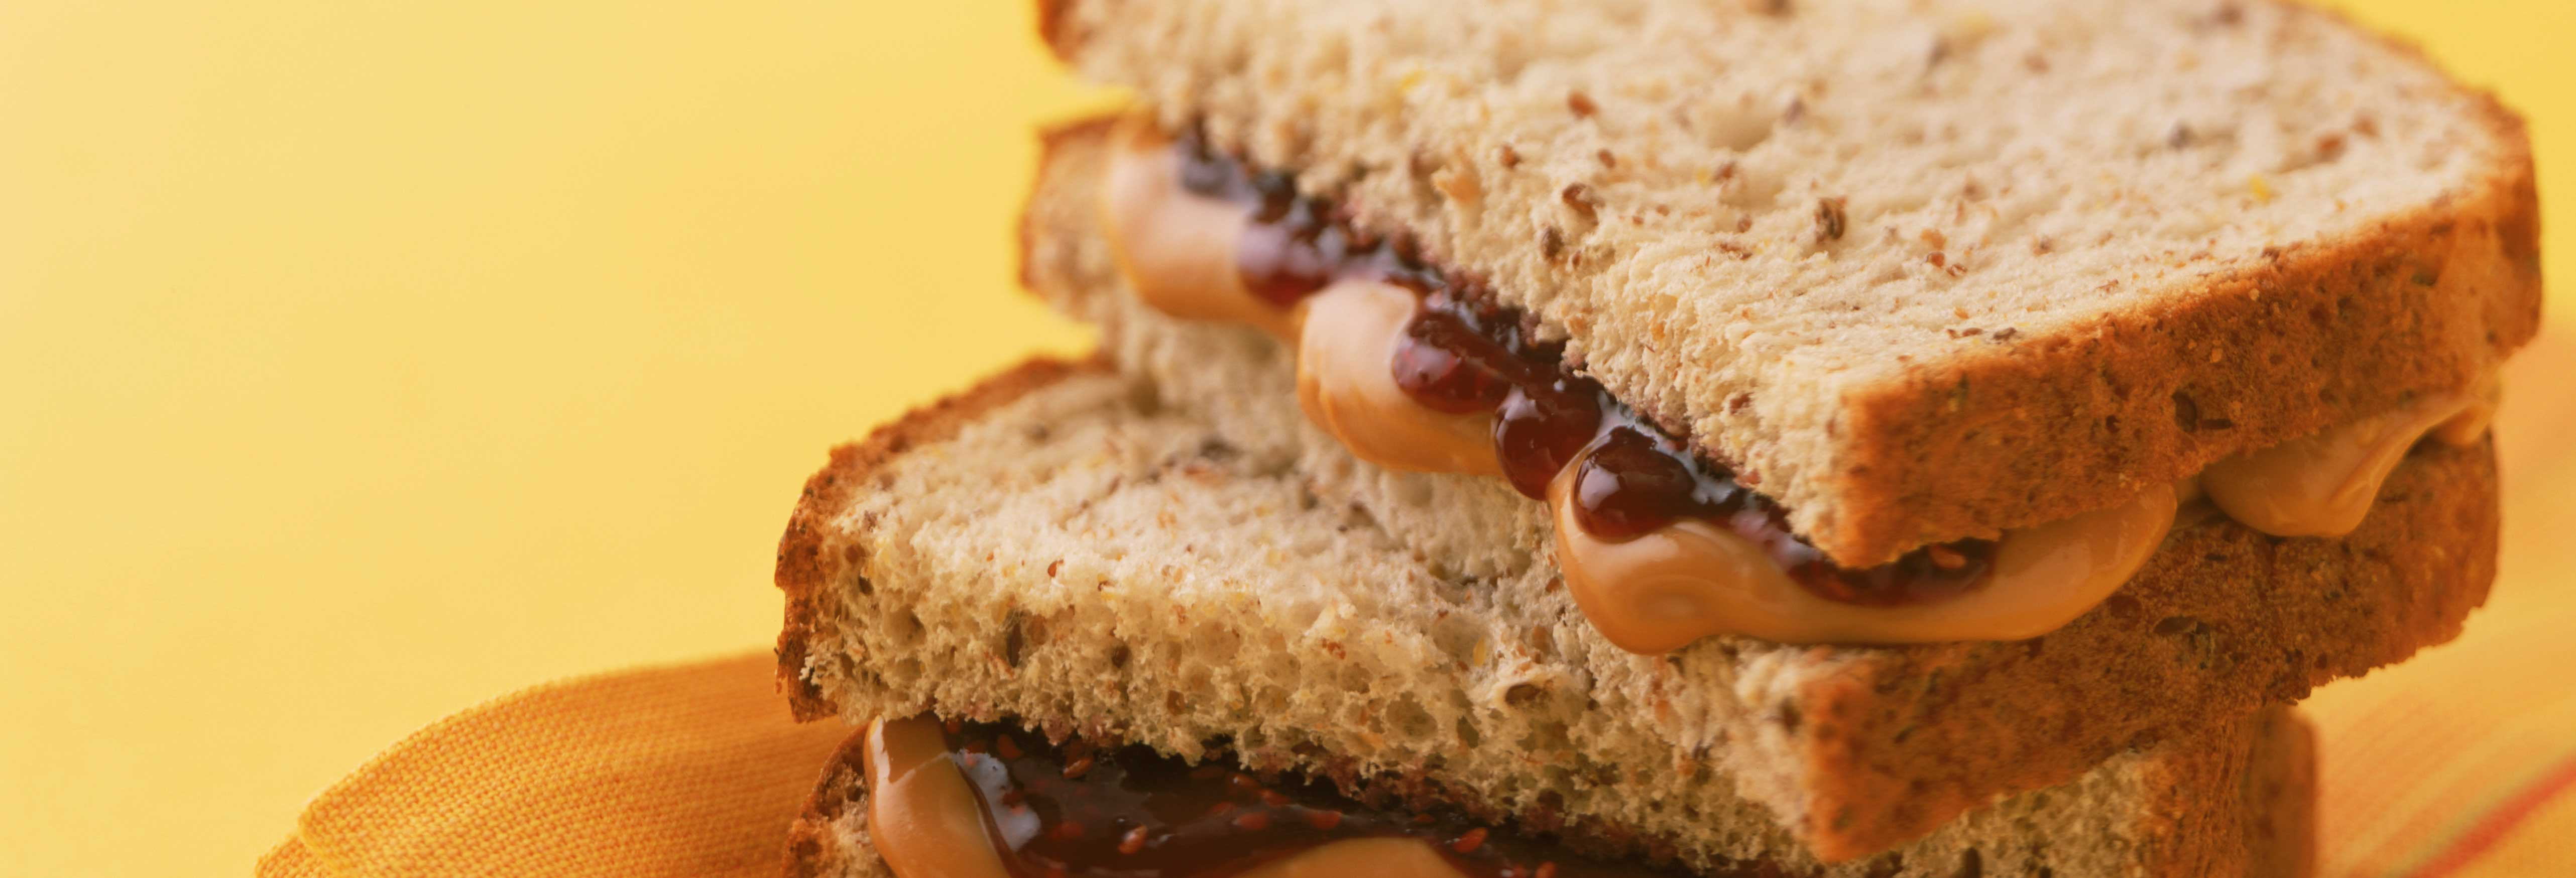 A Healthy Take On Peanut Butter And Jelly Consumer Reports